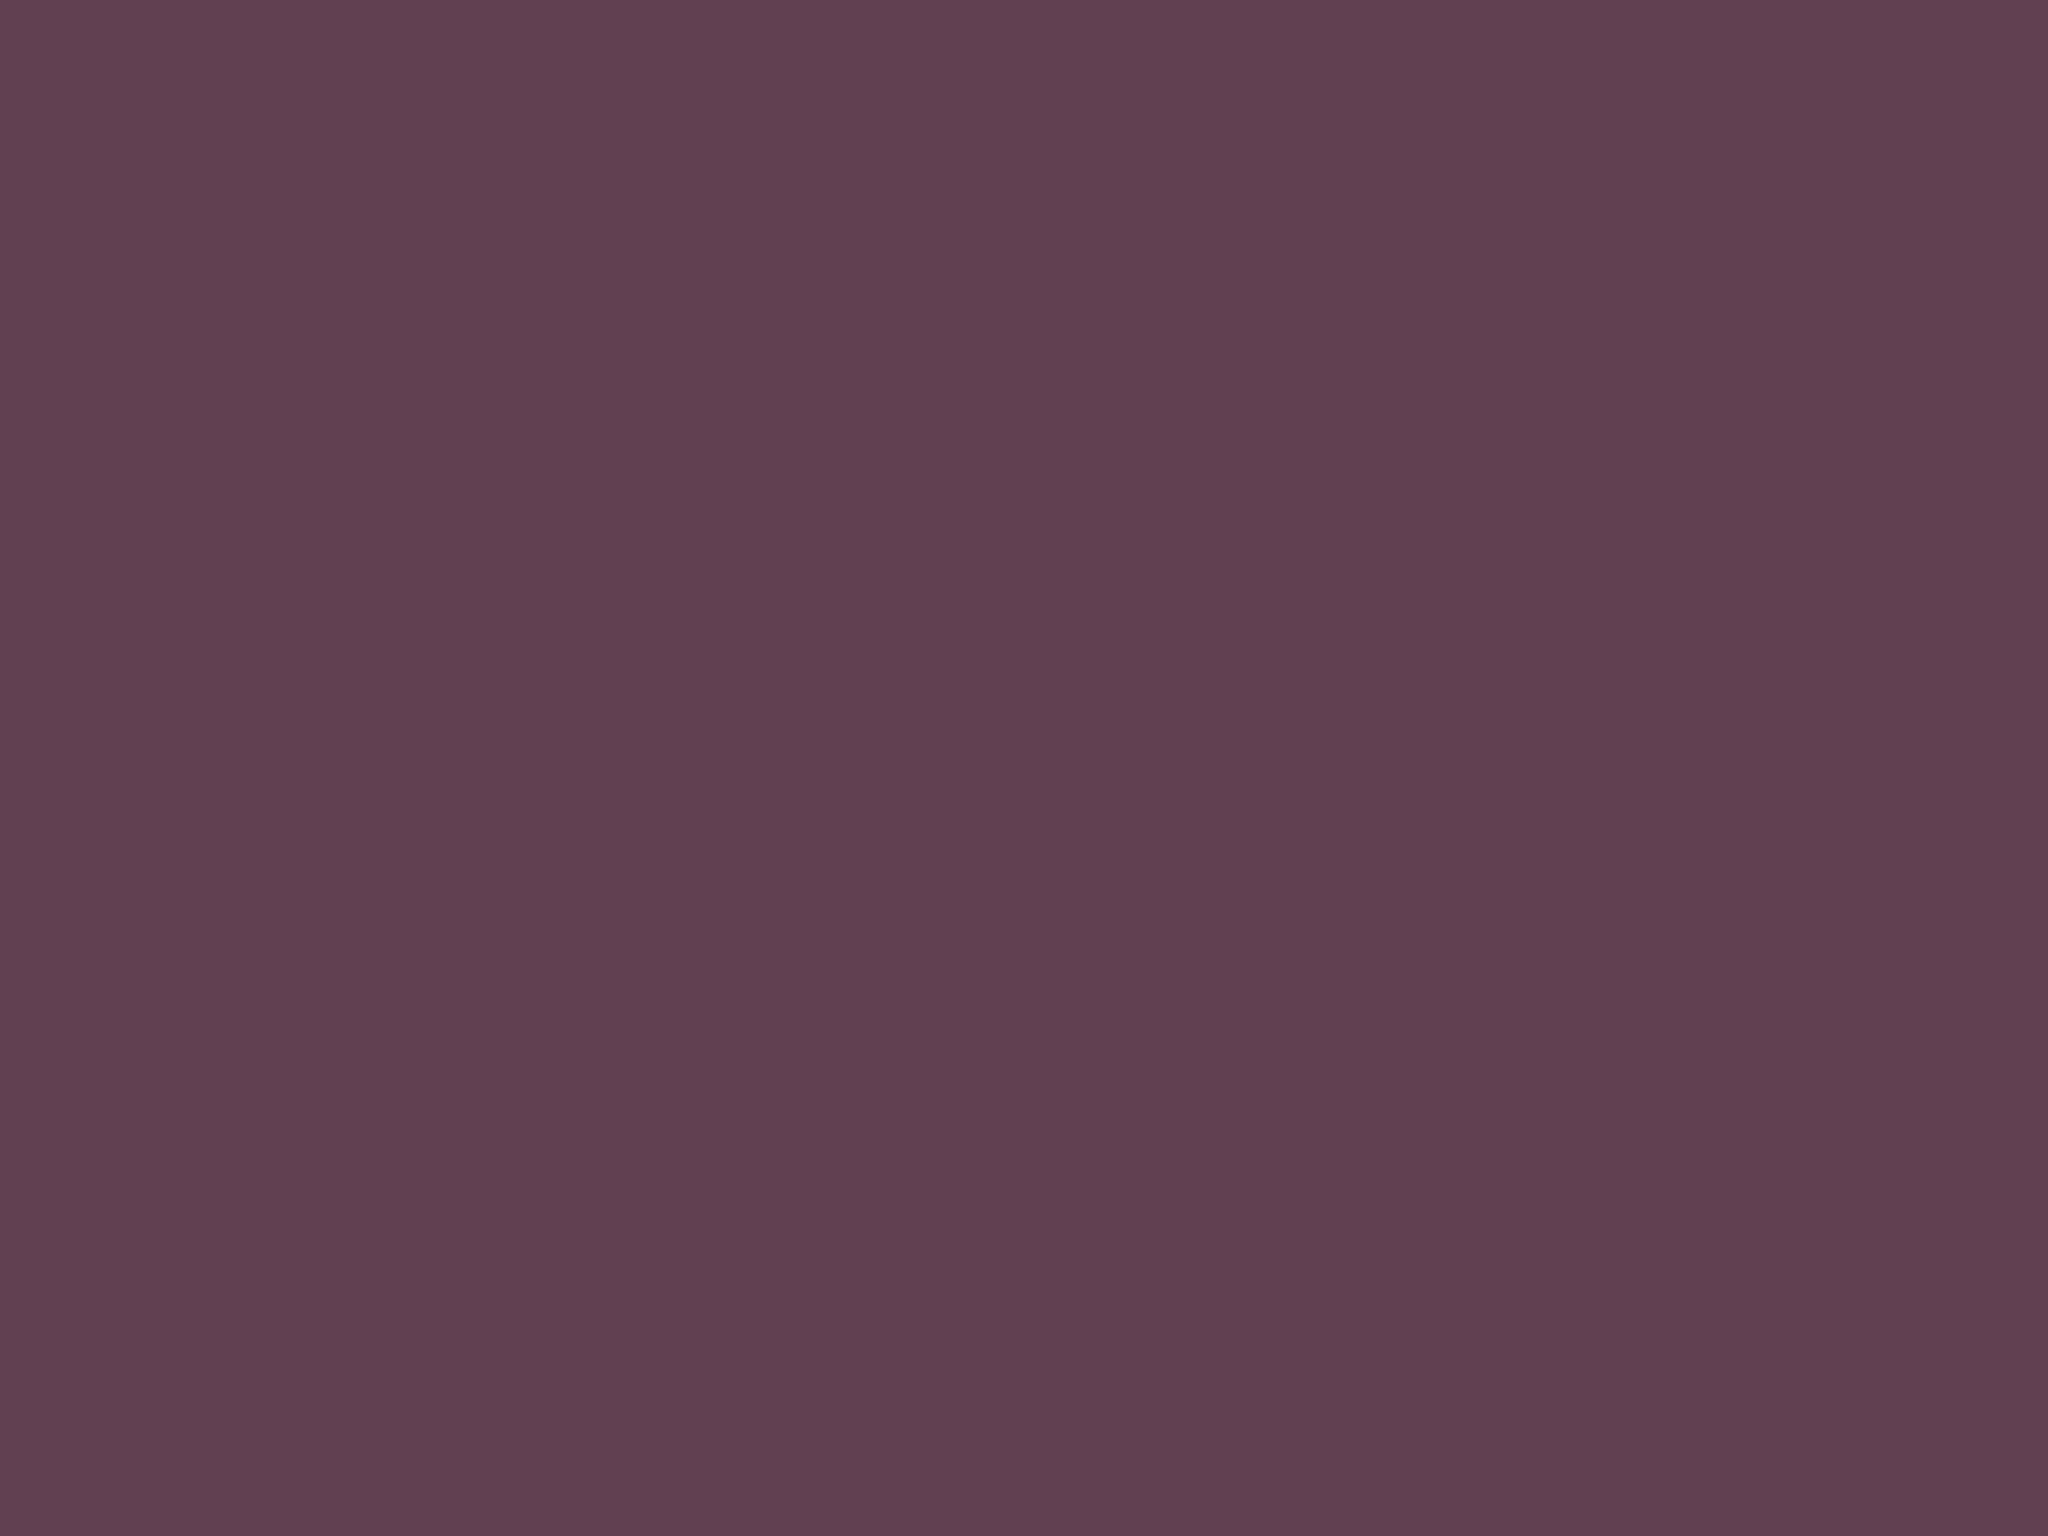 2048x1536 Eggplant Solid Color Background